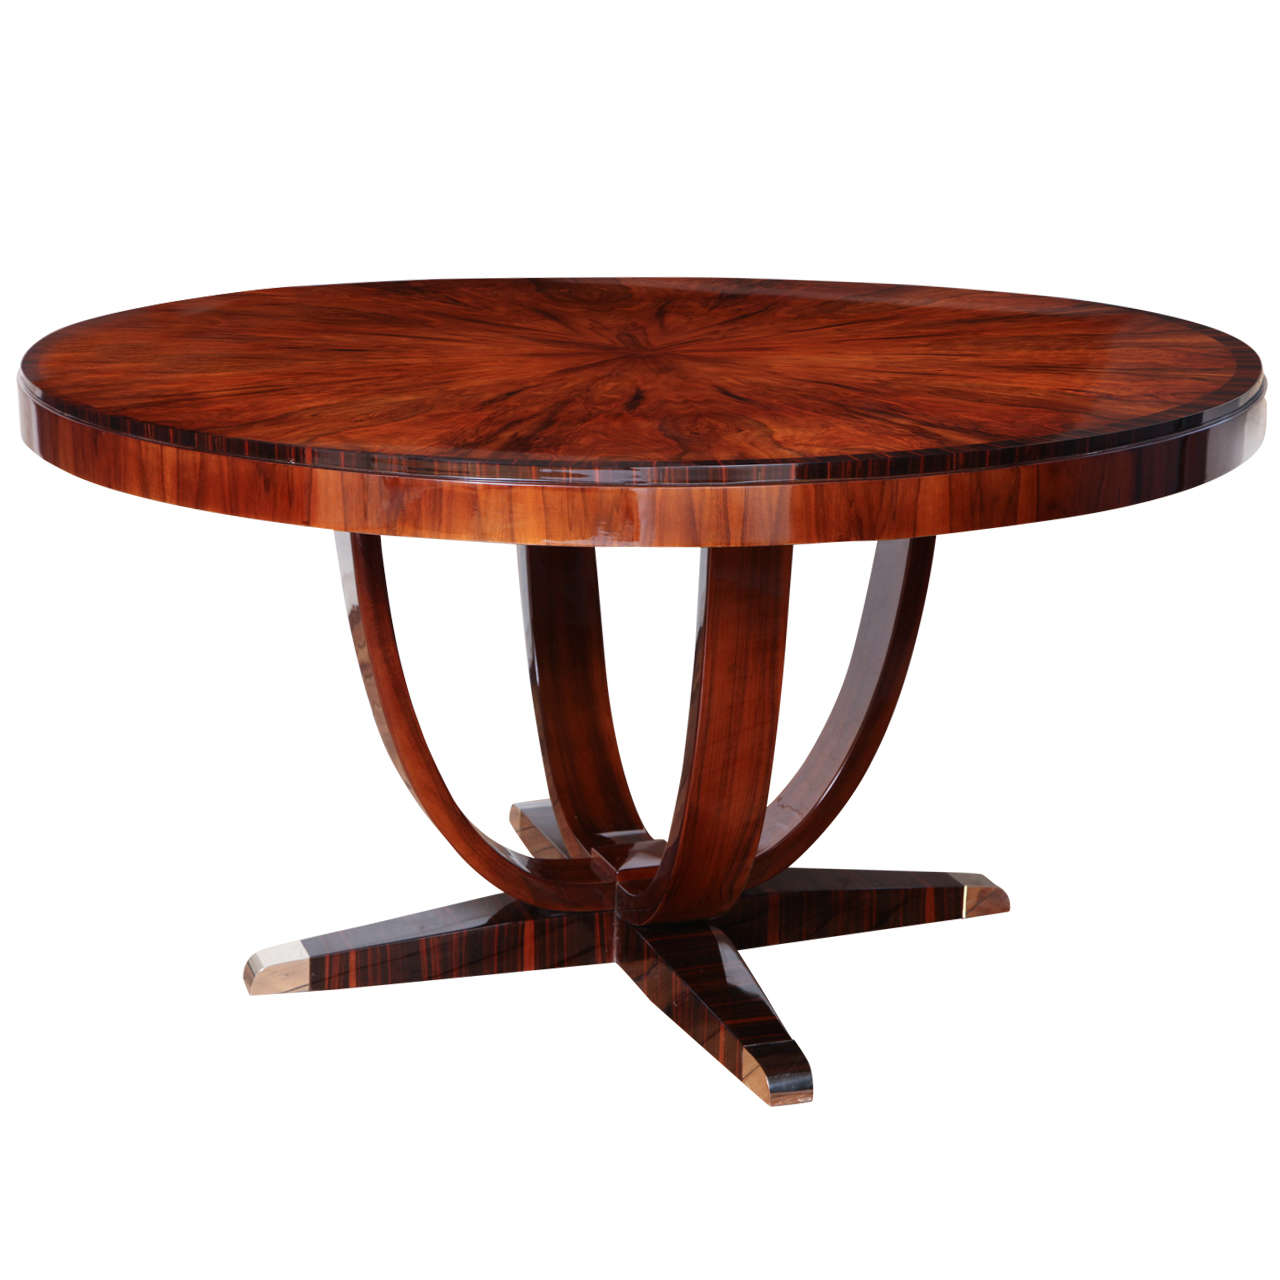 Fabulous Art Deco Round Dining Table At 1stdibs